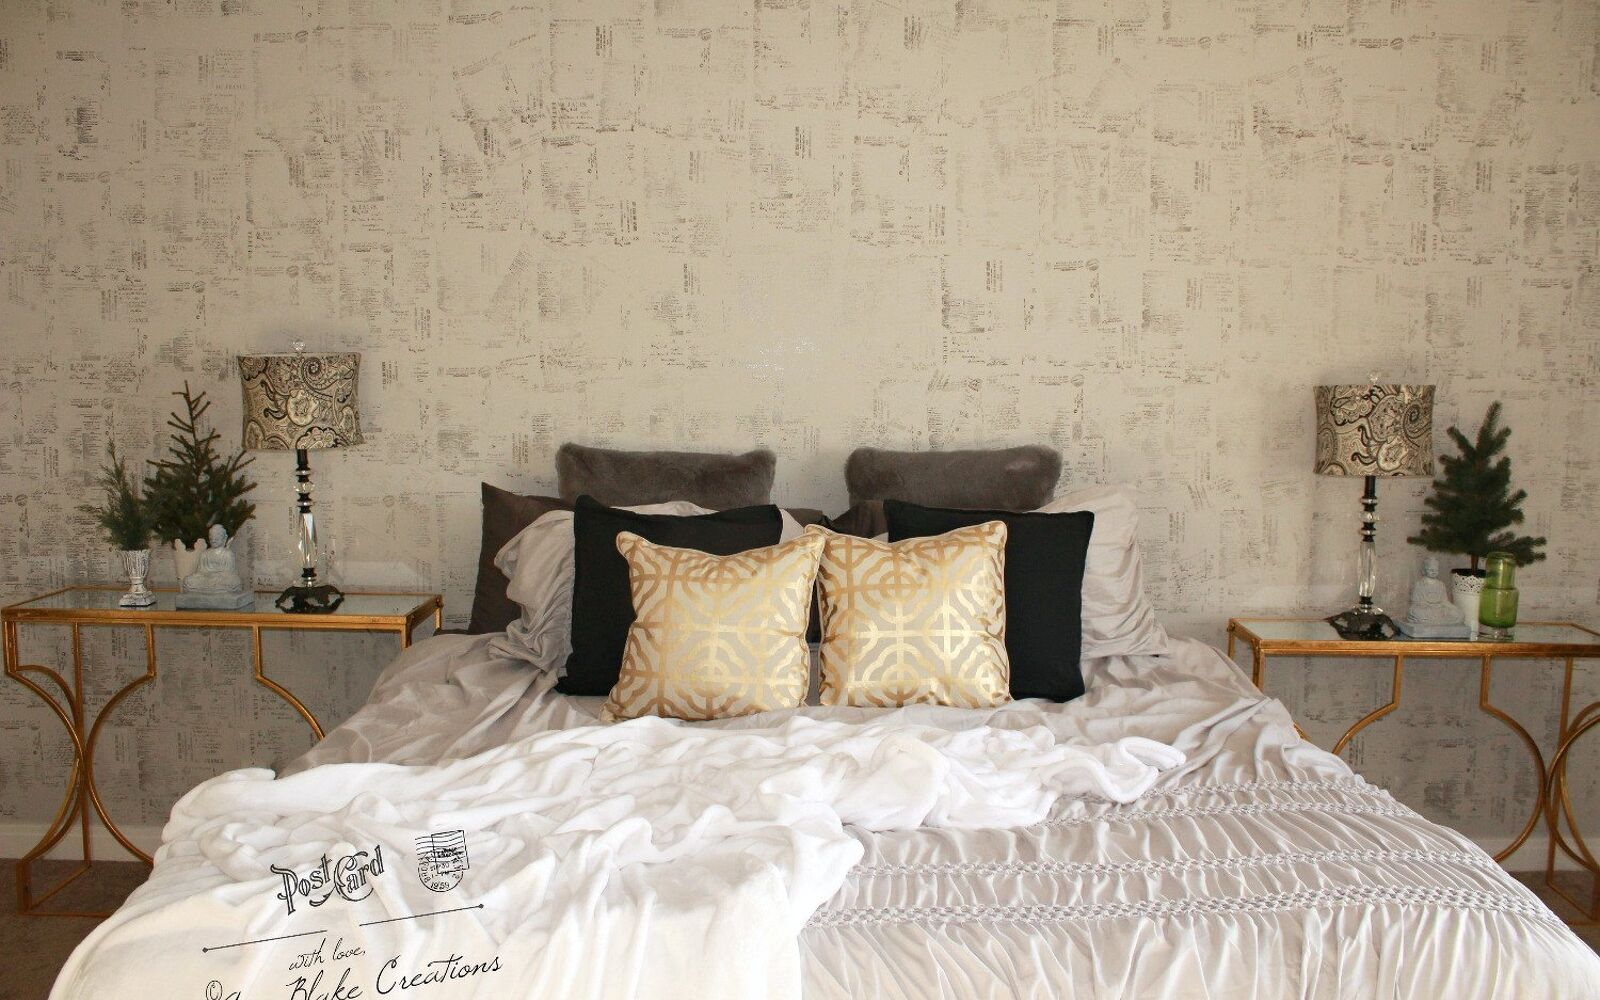 s 15 makeovers that will make you rethink your bedroom, Press Stamps On The Walls For Texture